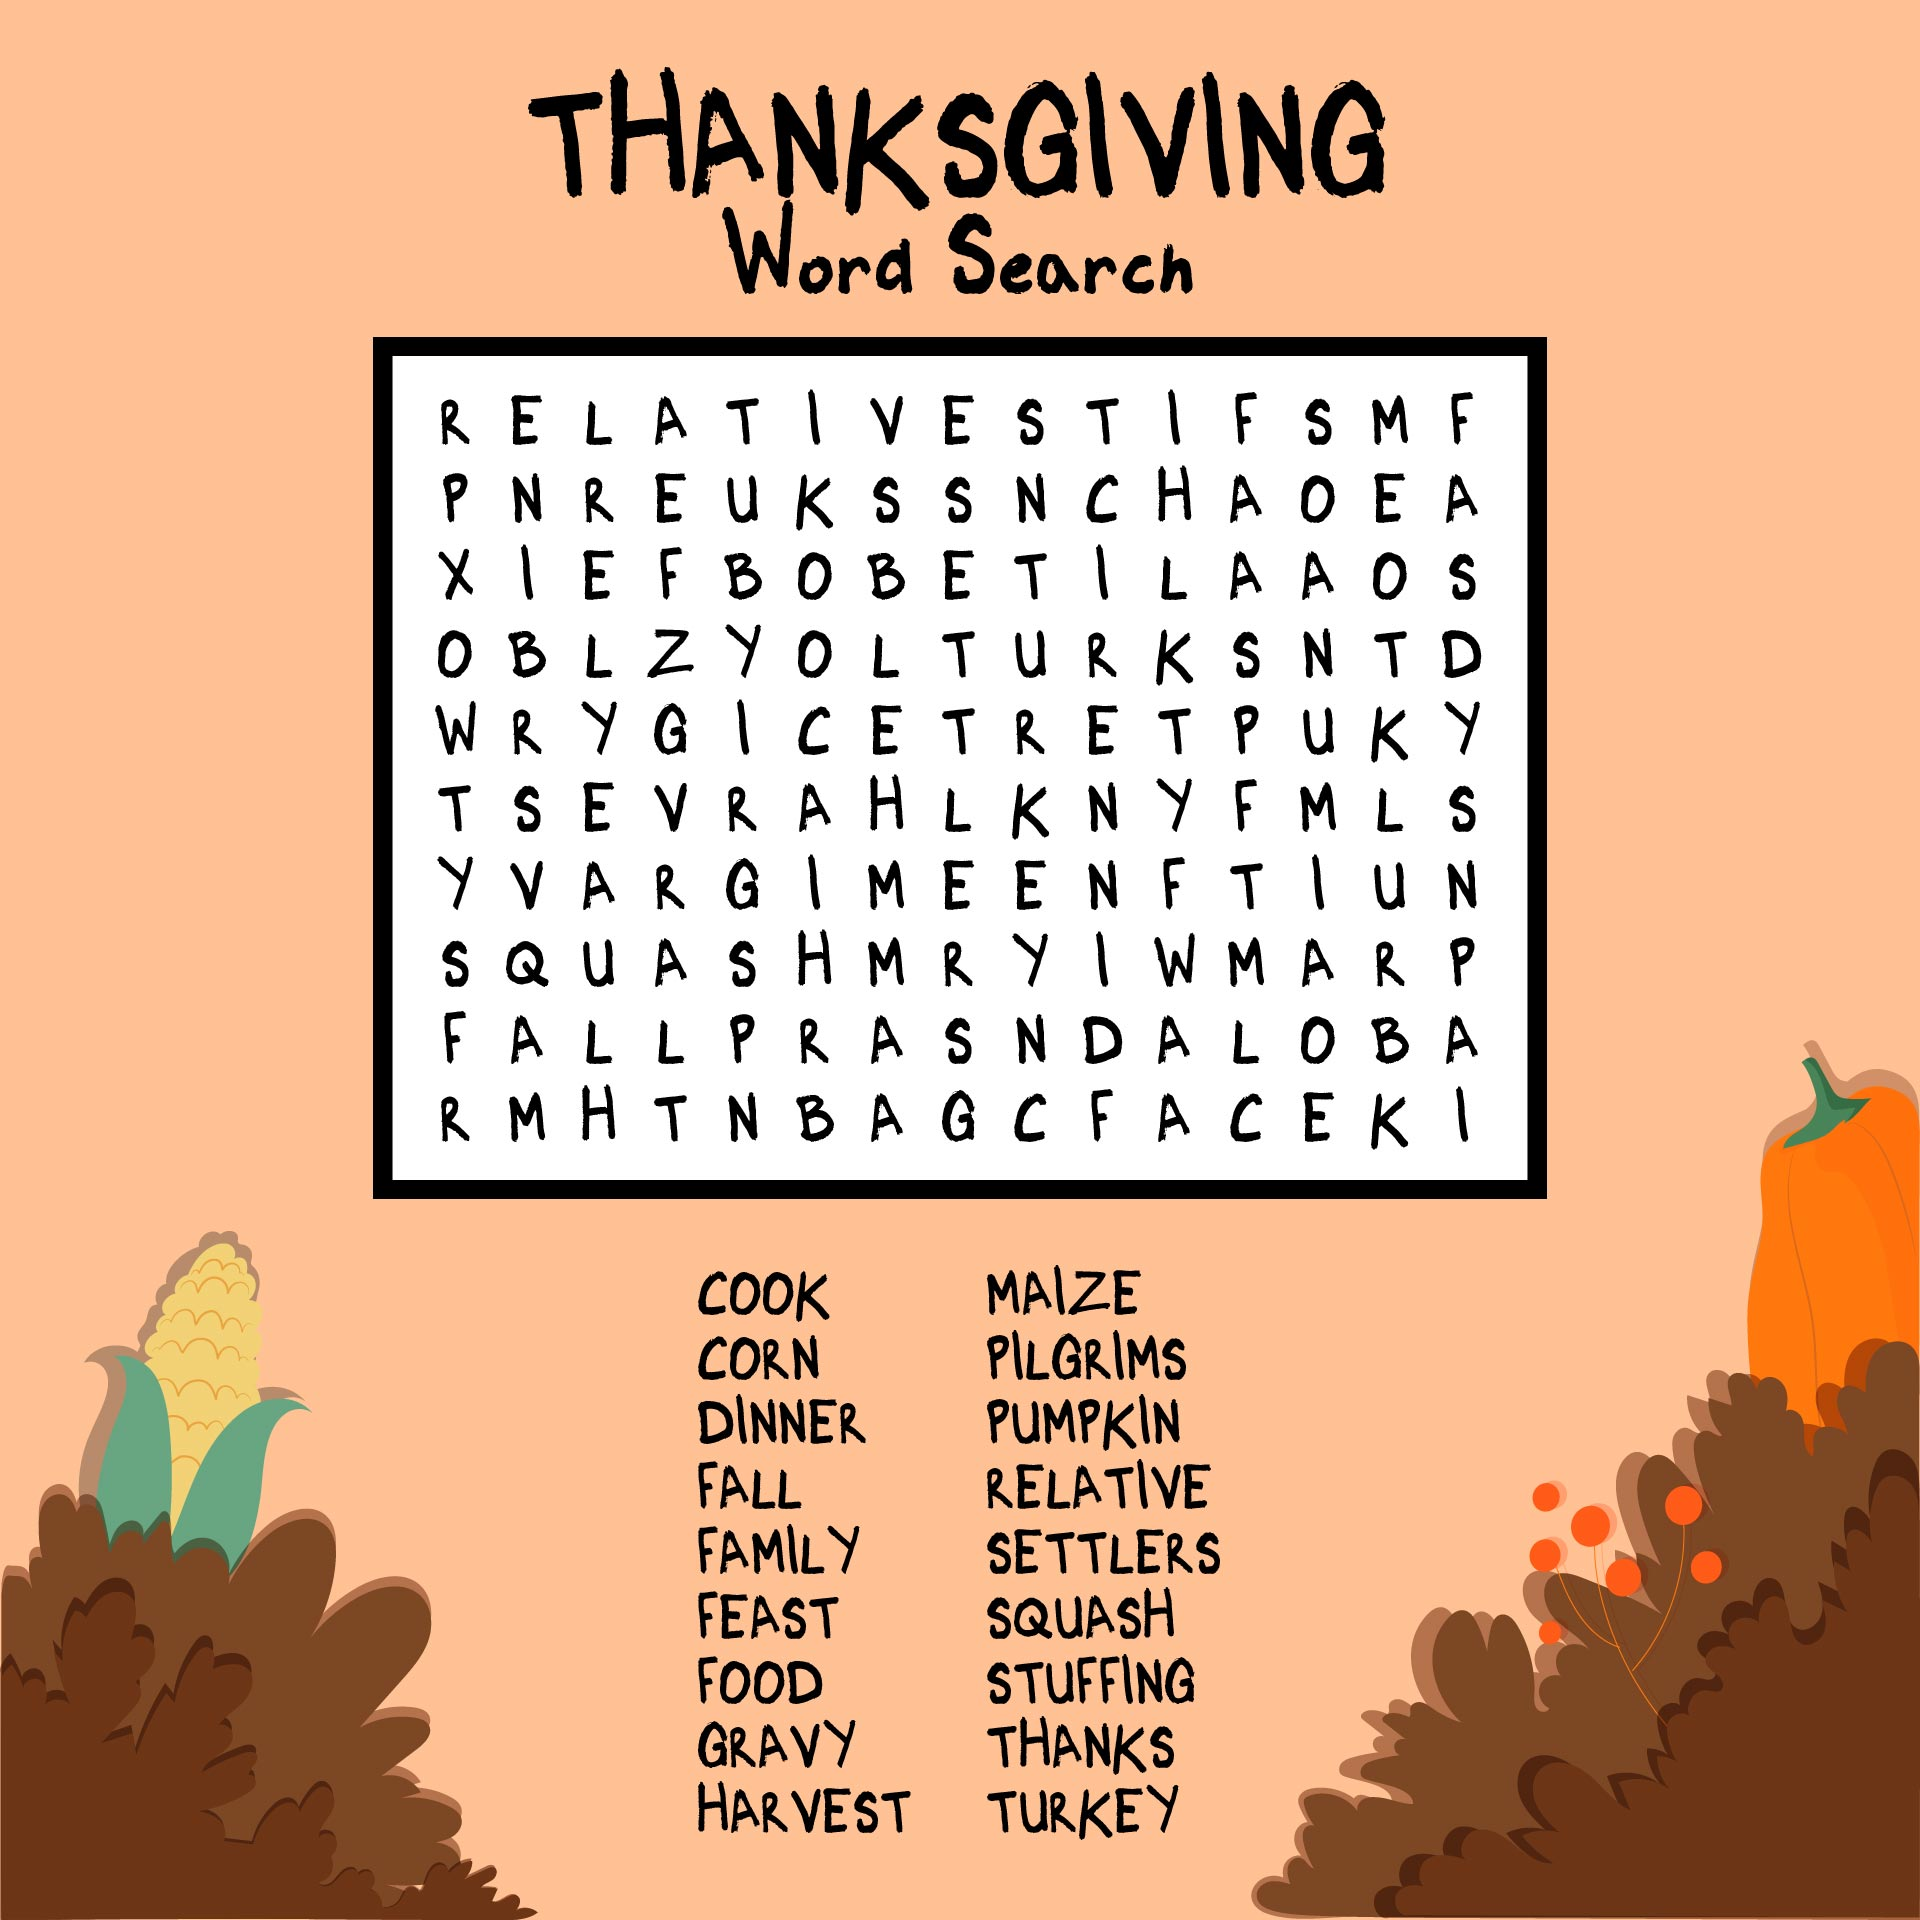 Thanksgiving History Word Search Printable